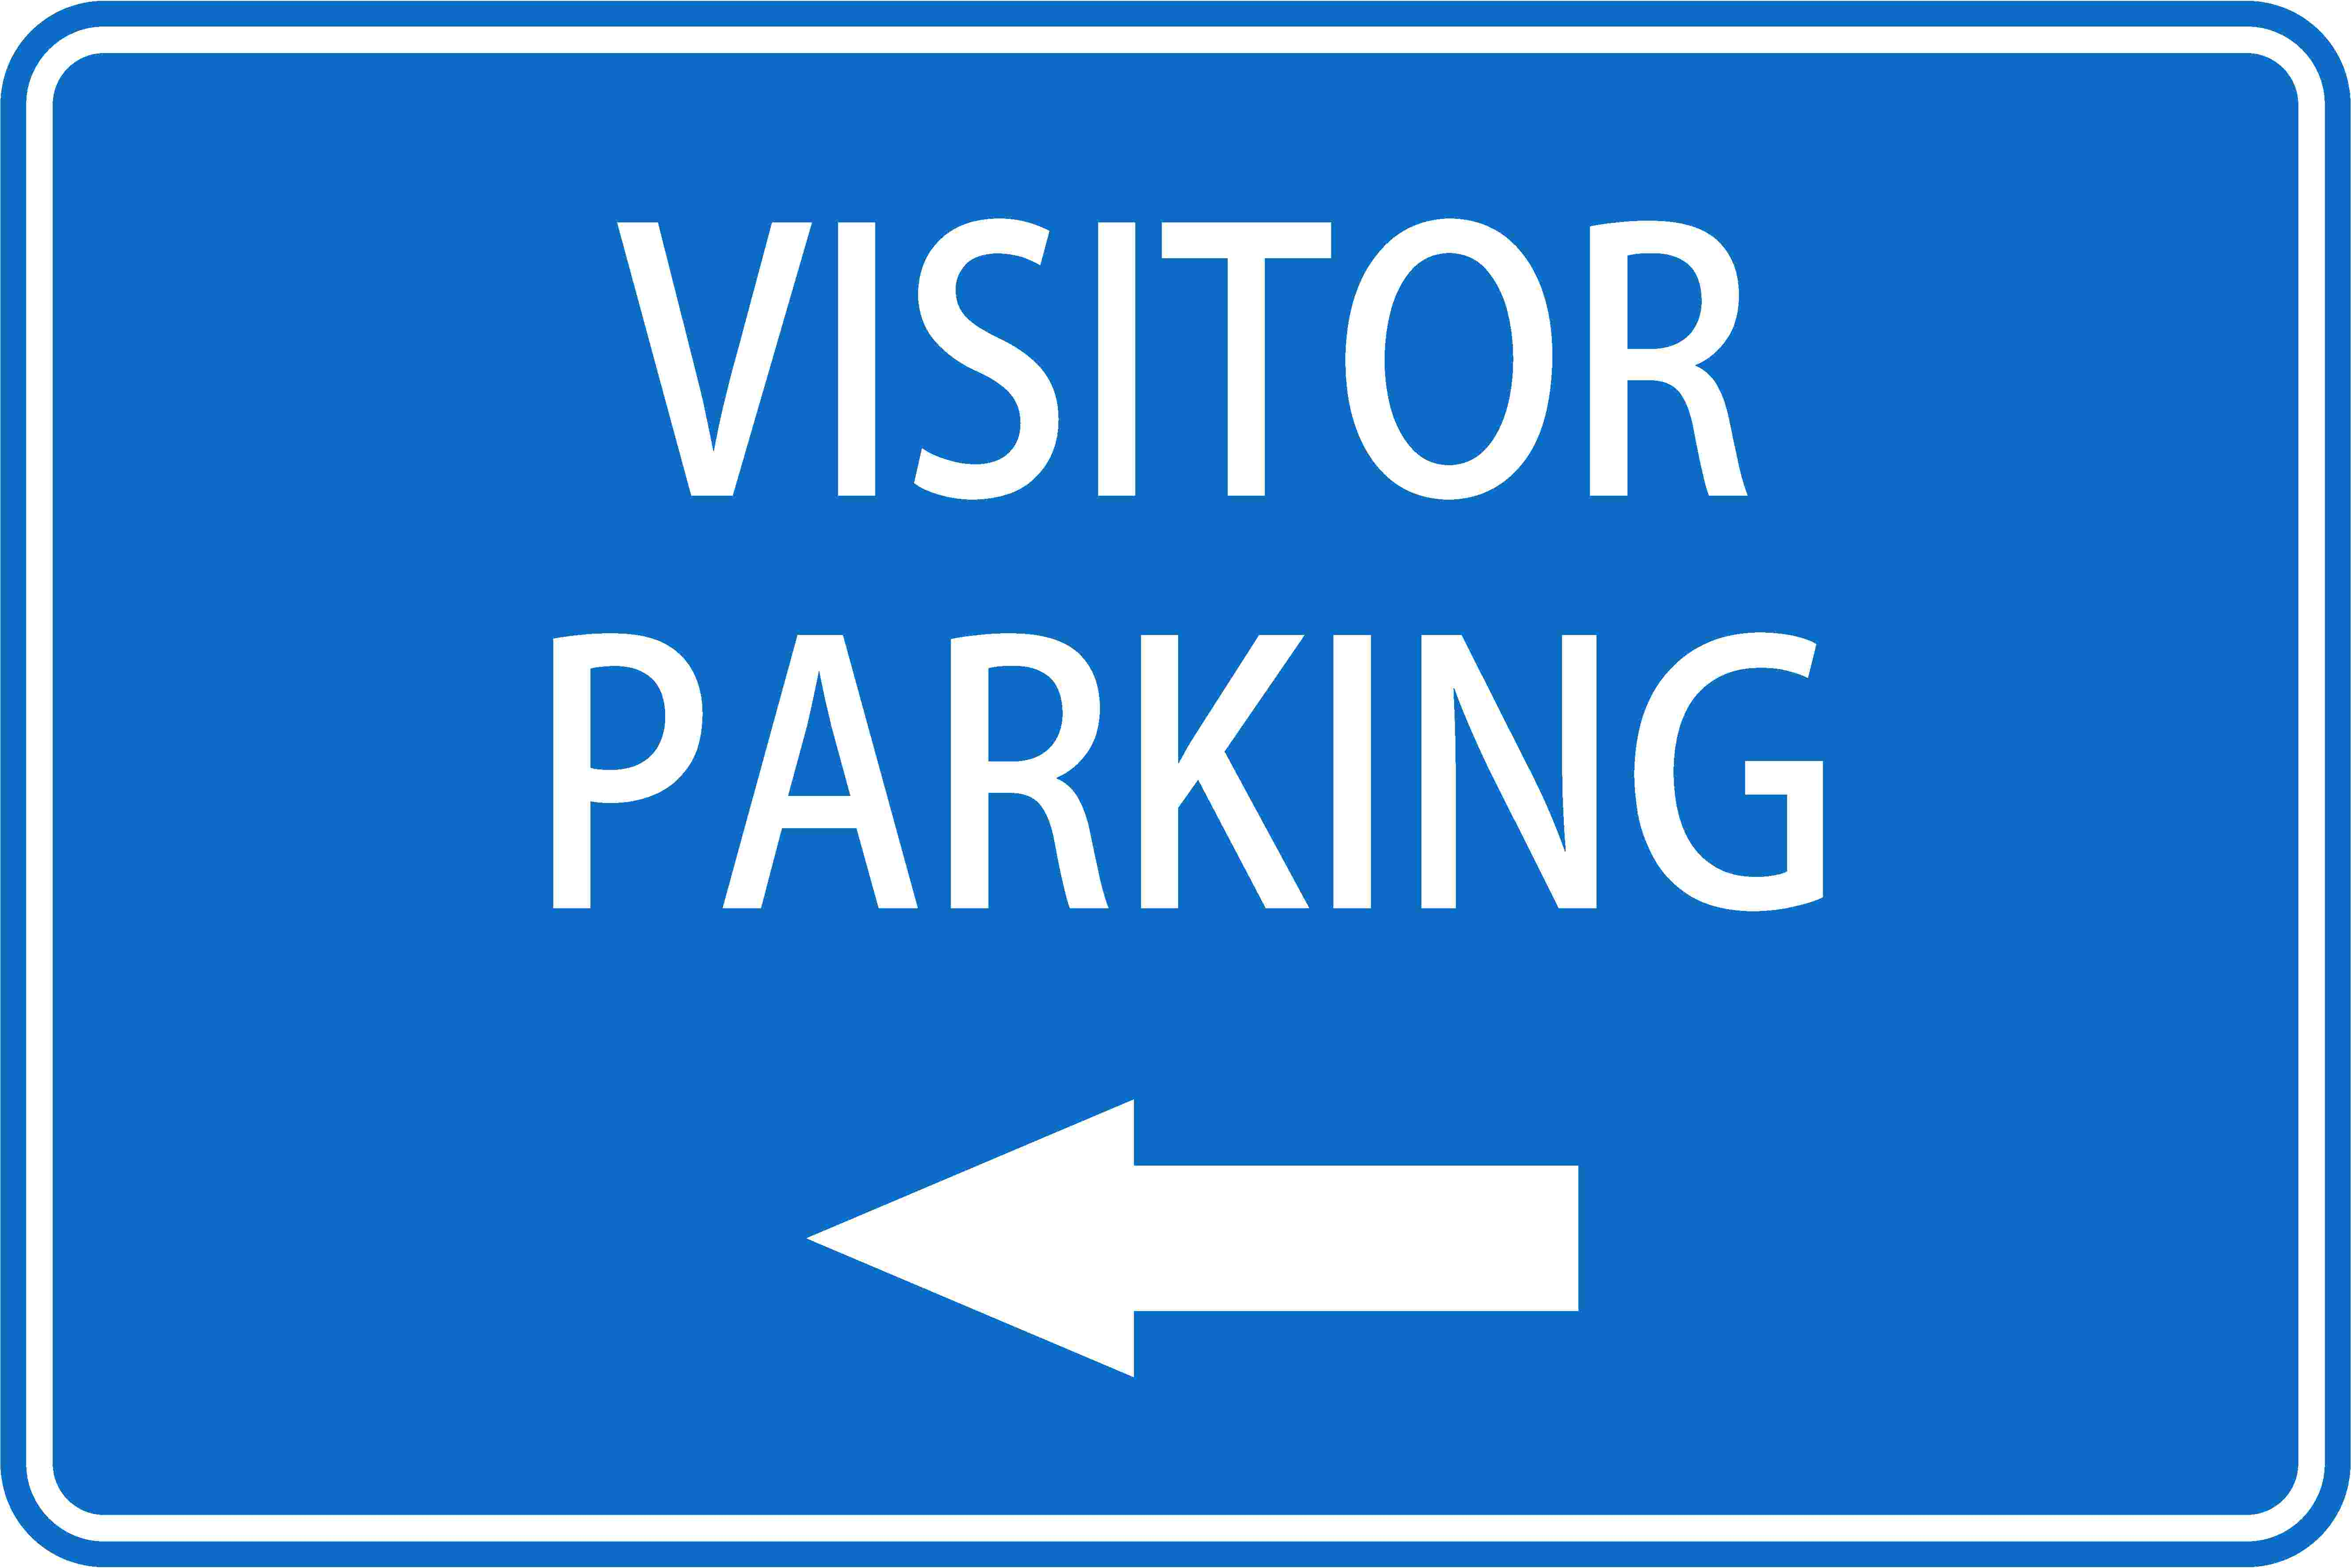 Parking Signs VISITOR PARKING LEFT ARROW